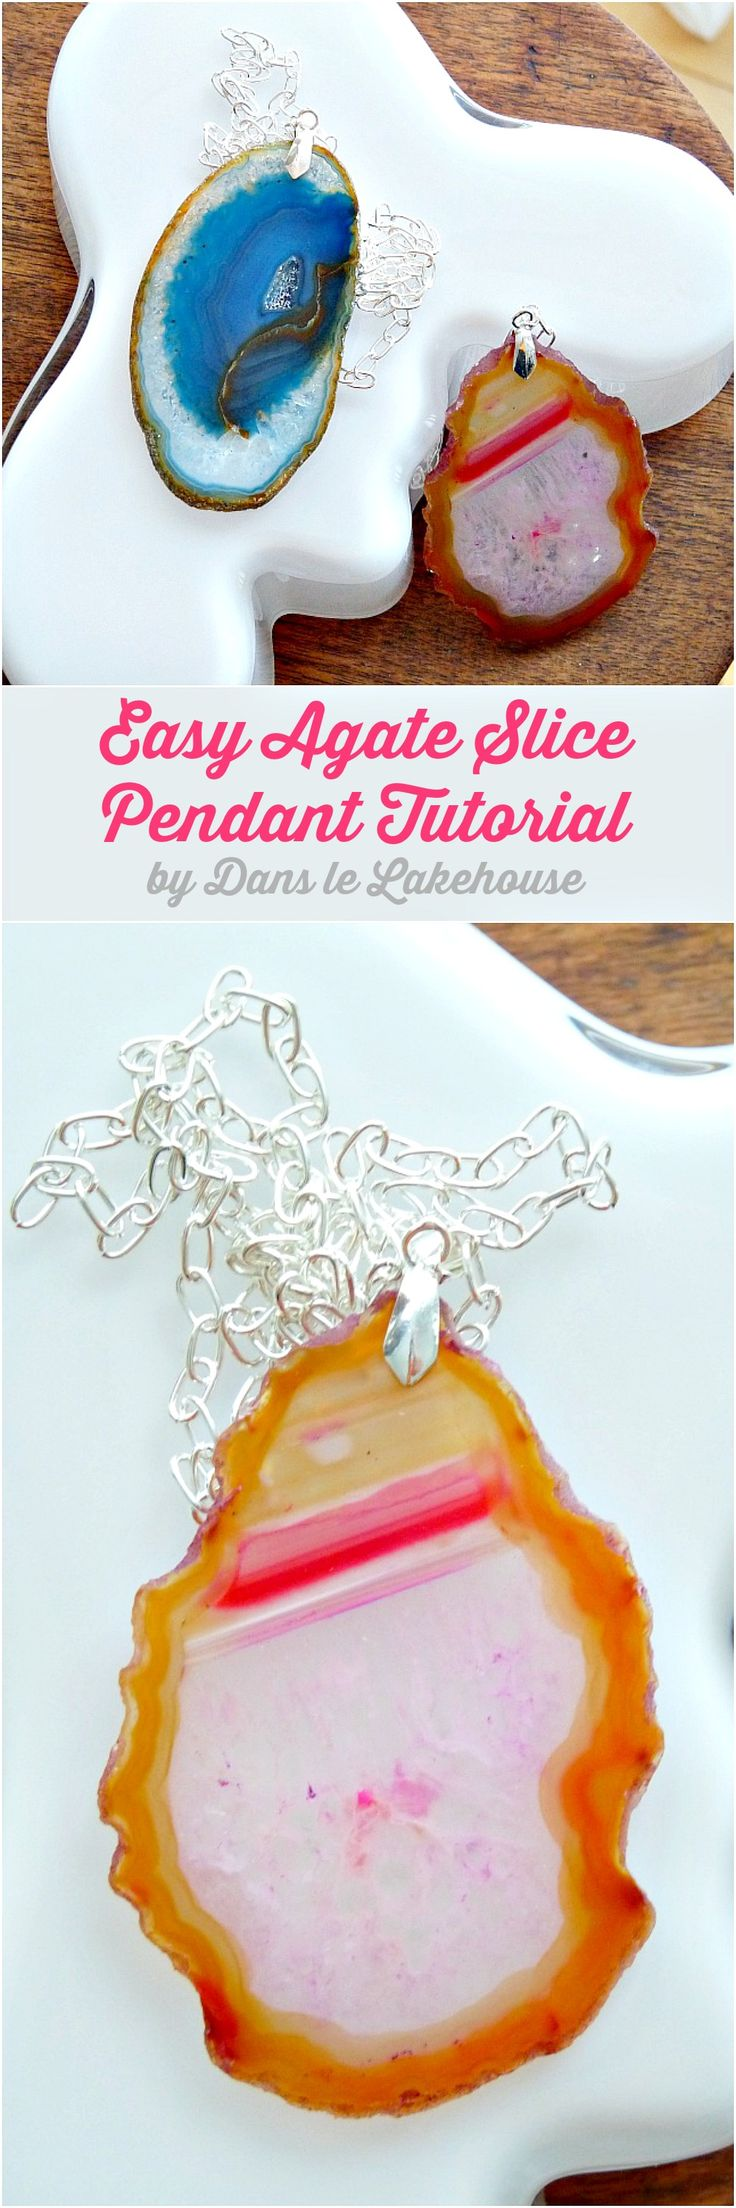 DIY agate slice pendant necklace tutorial